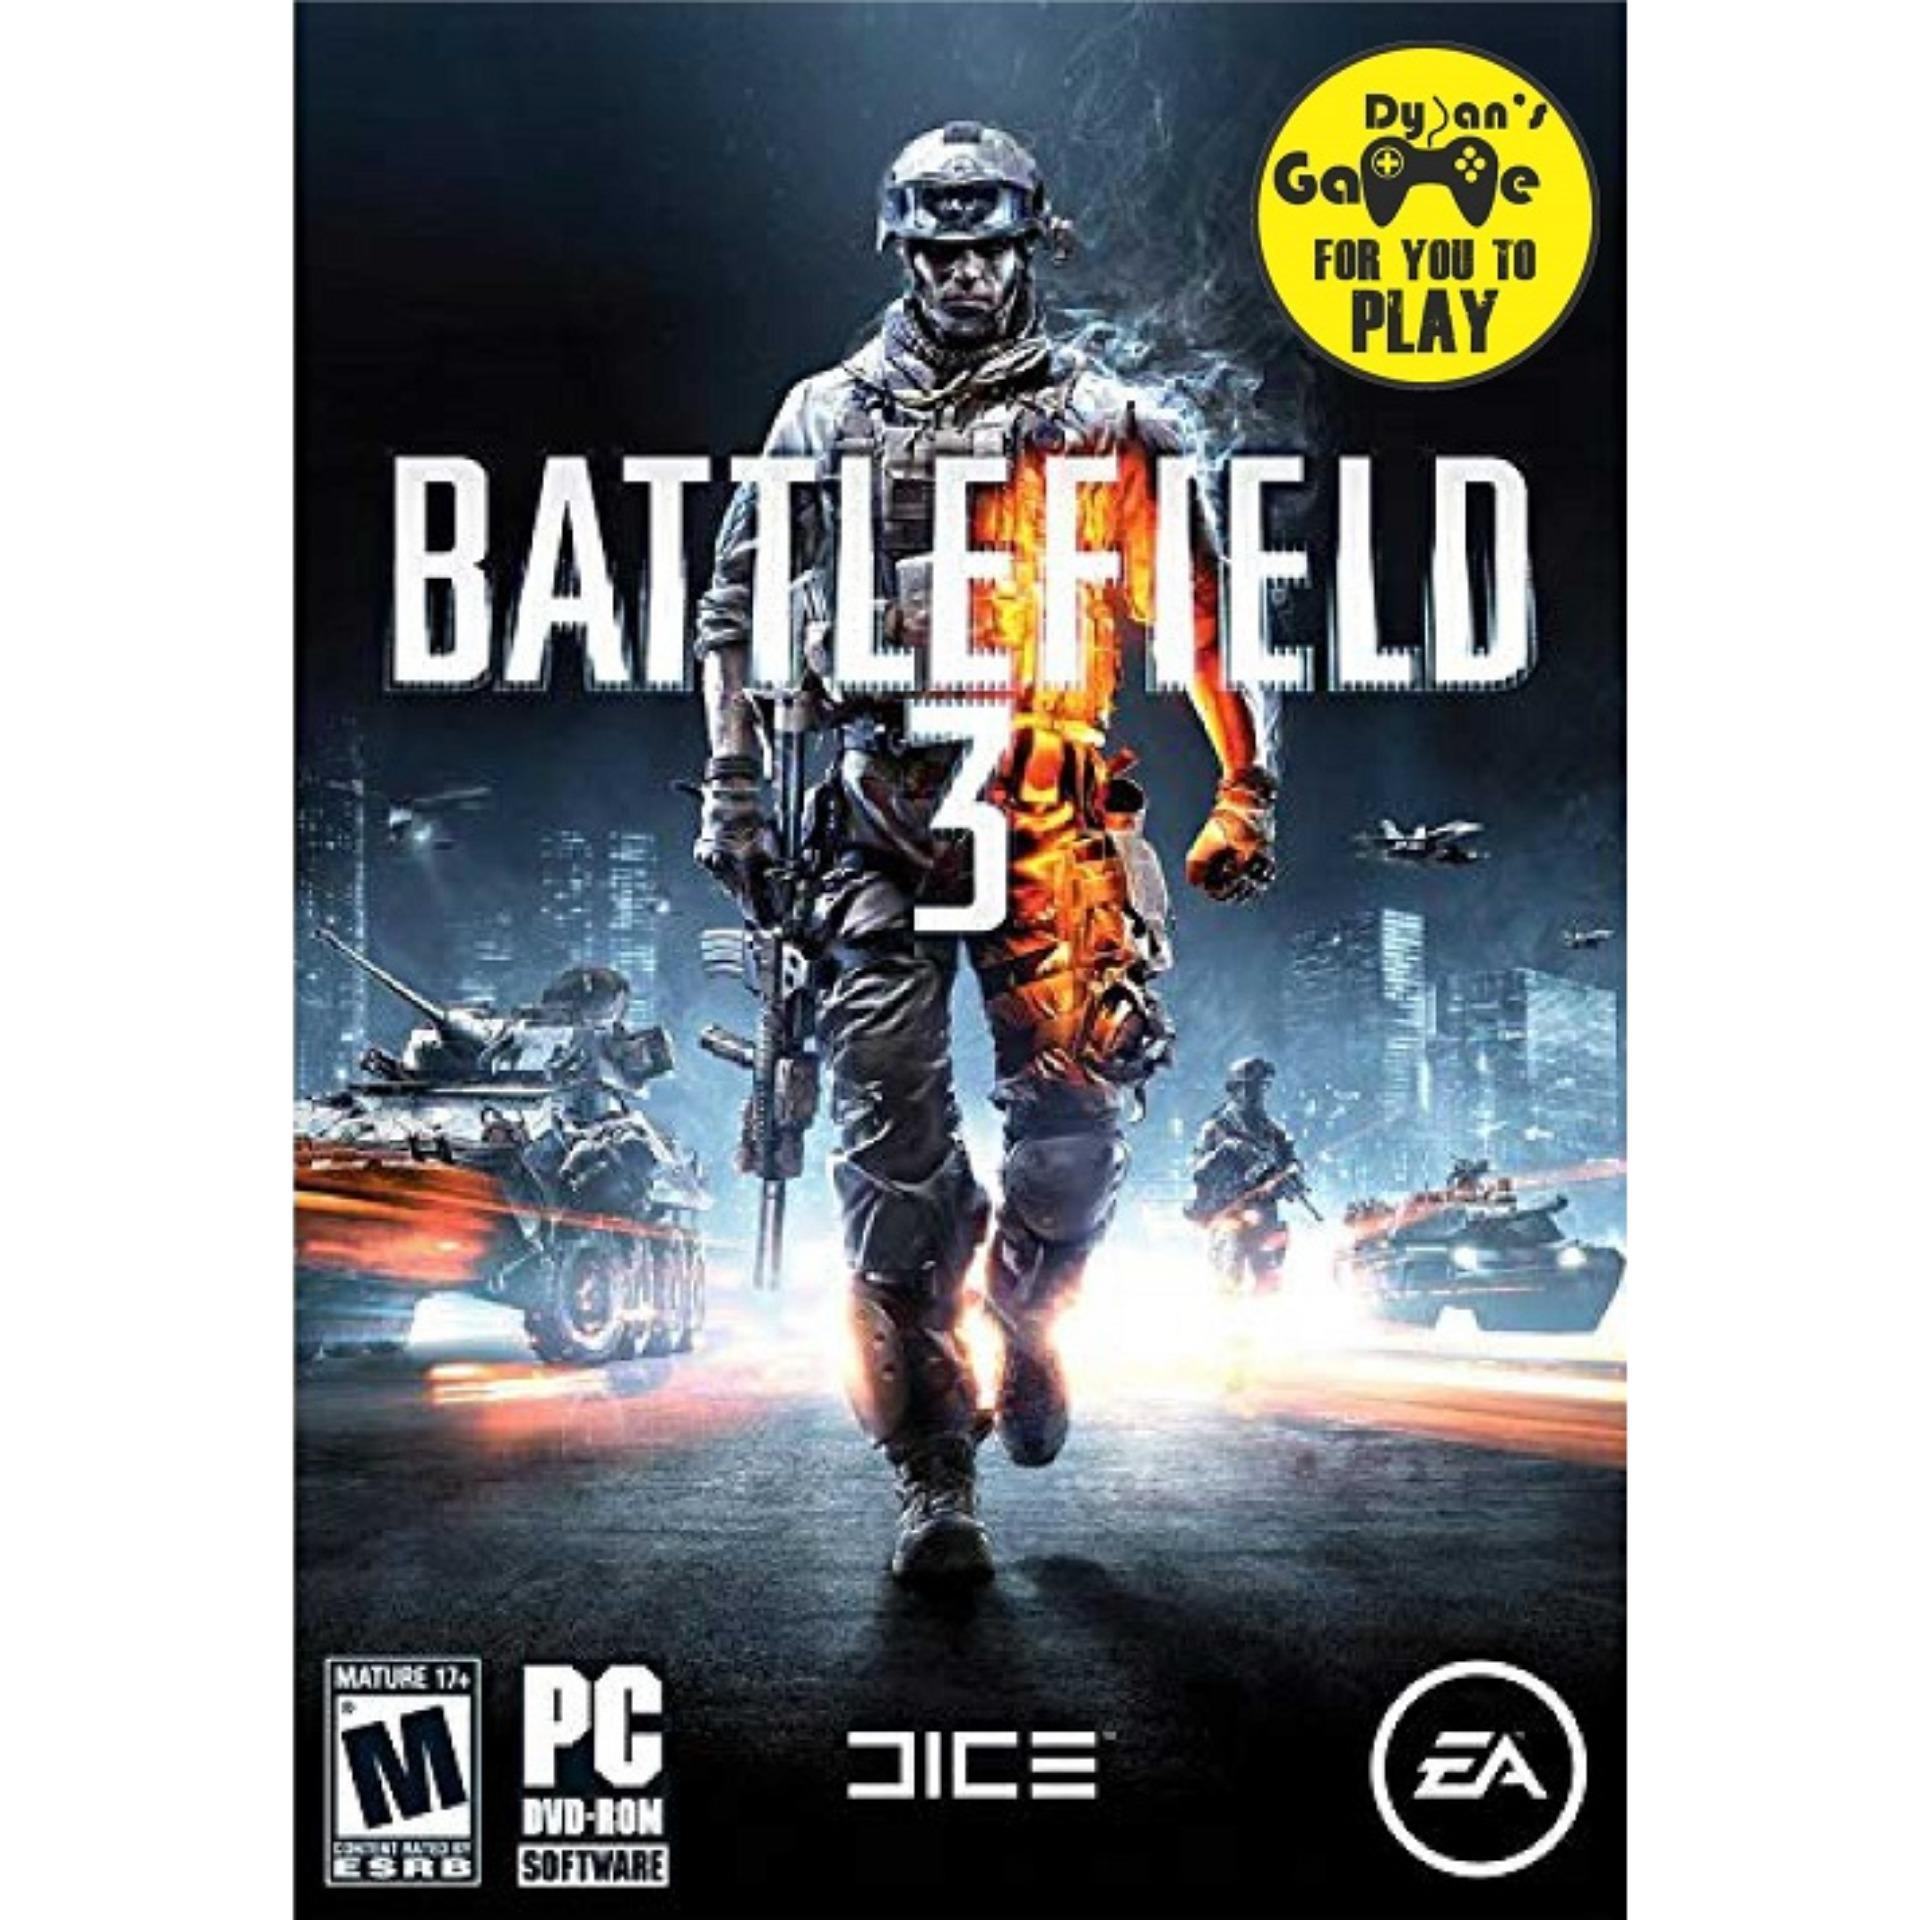 Battlefield 3 Pc - Full Game By Dylansgame.